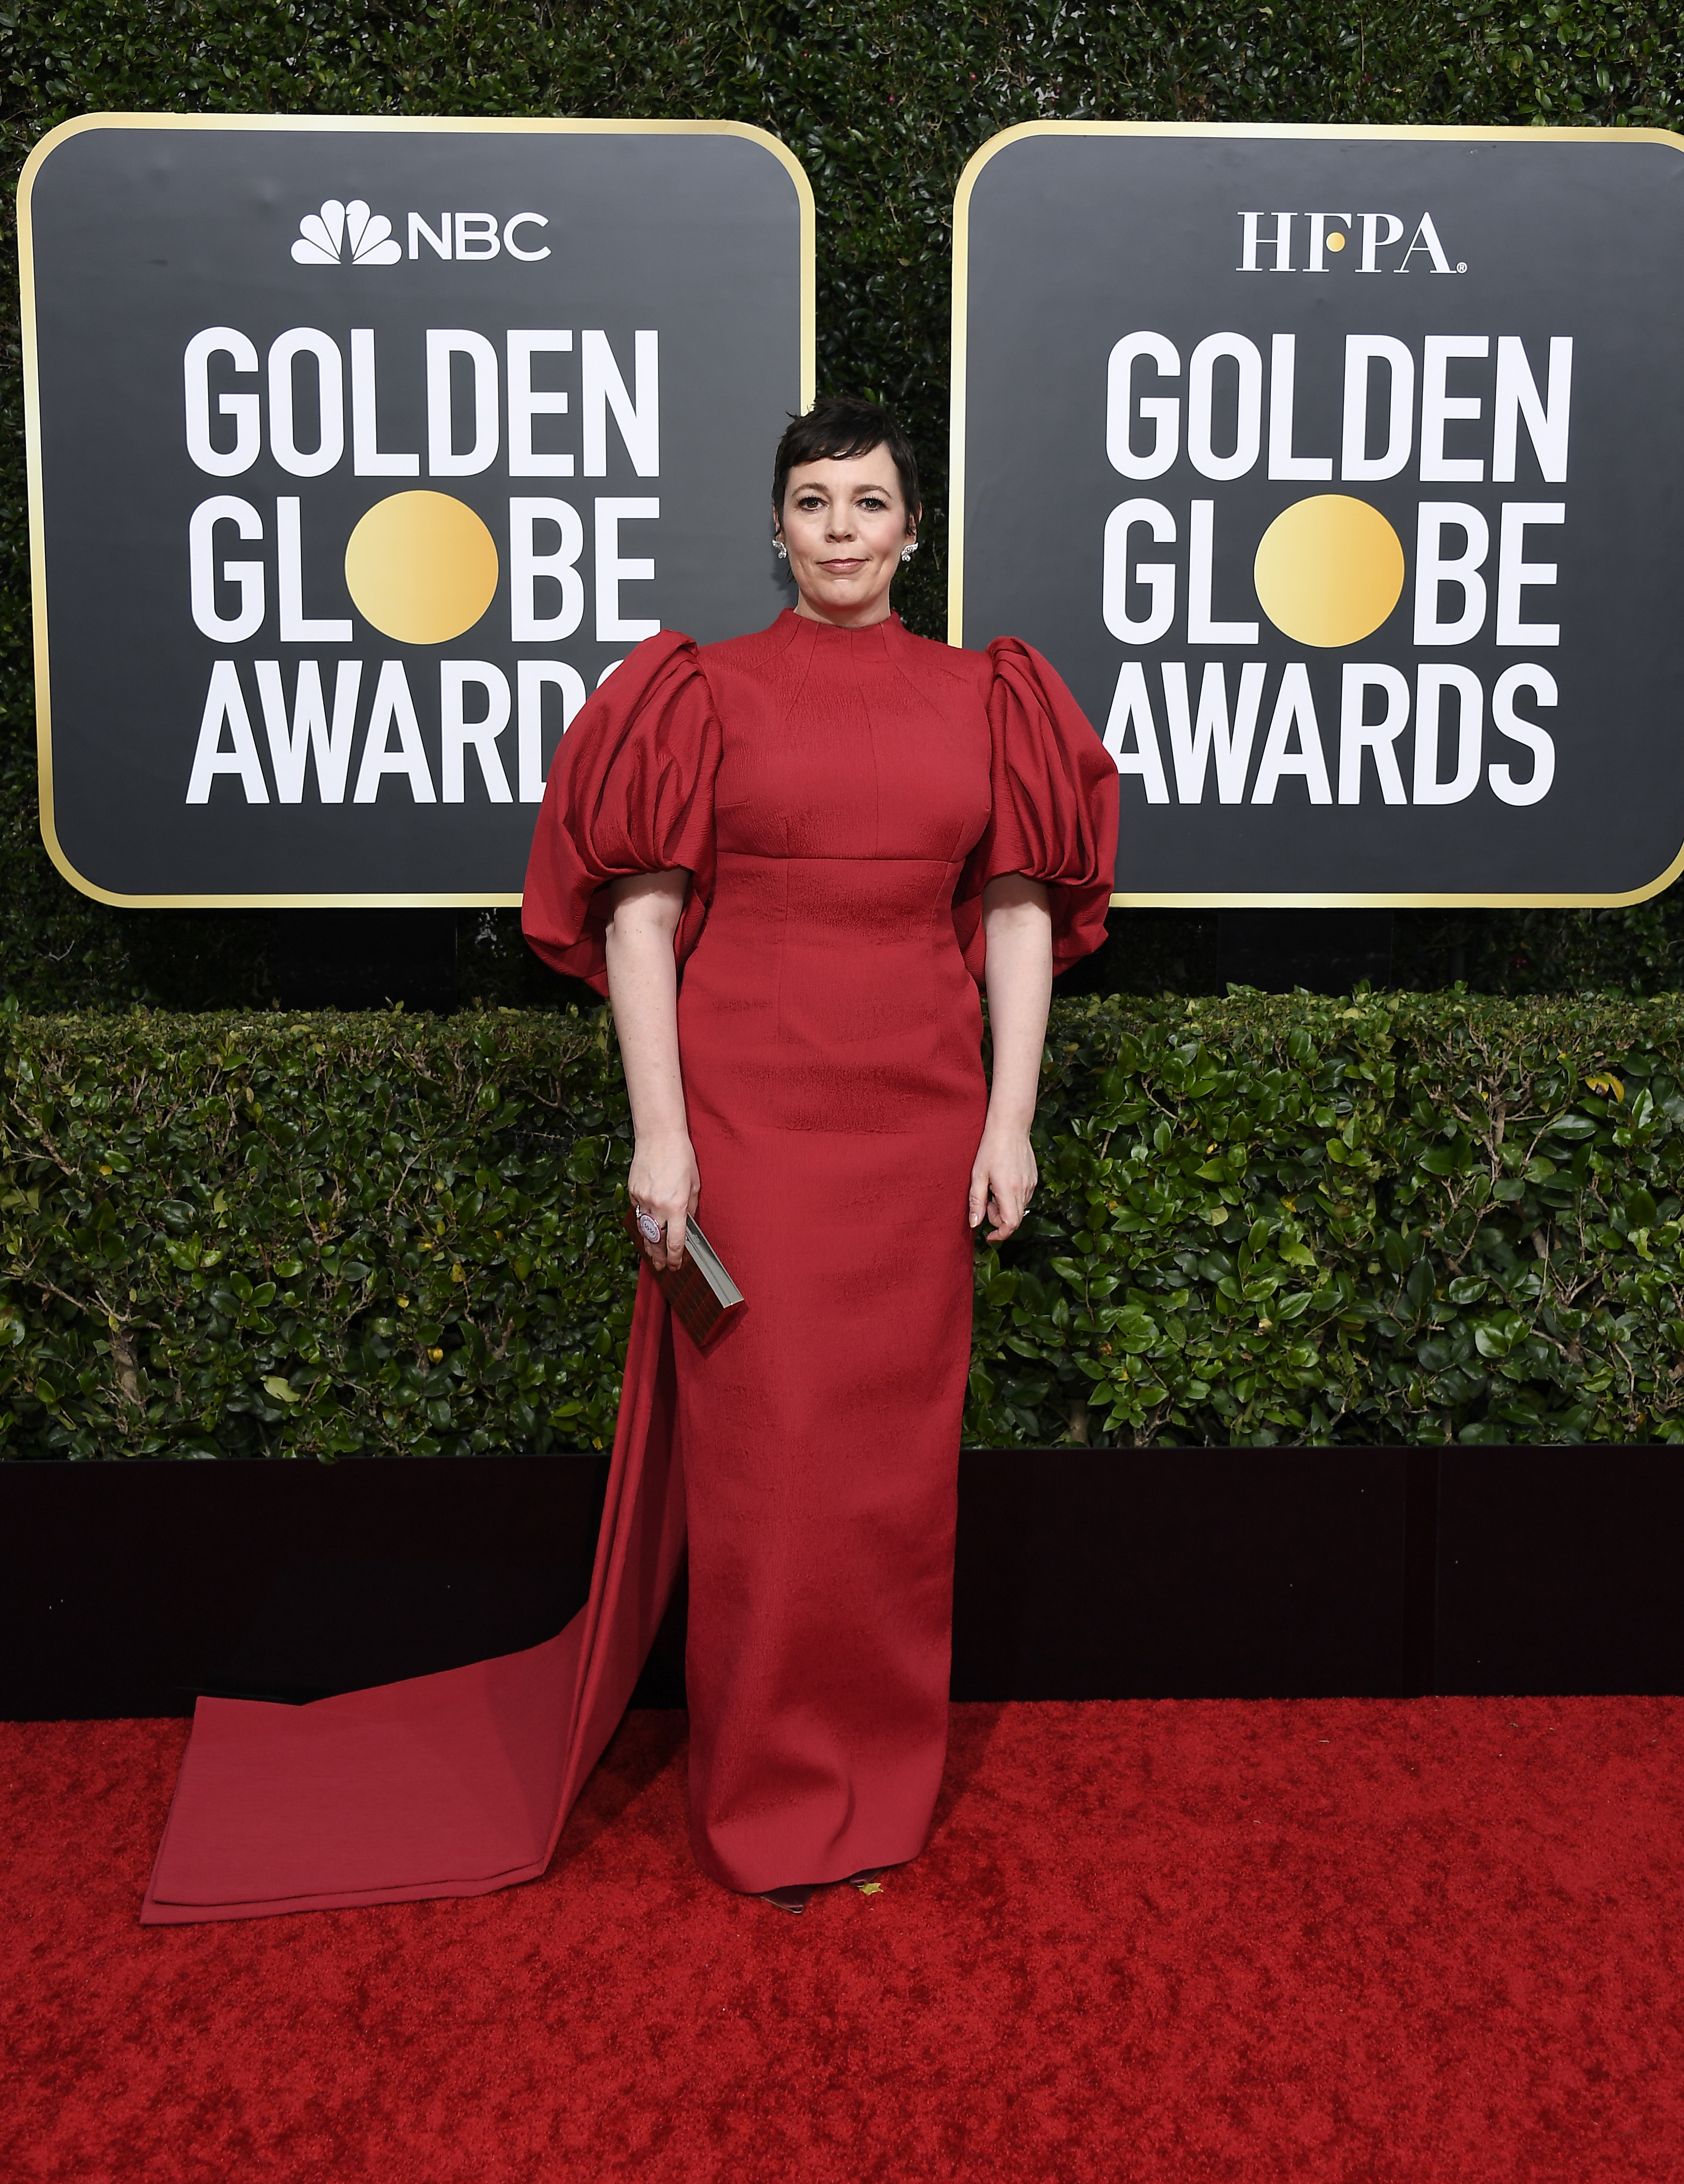 BEVERLY HILLS, CALIFORNIA - JANUARY 05: 77th ANNUAL GOLDEN GLOBE AWARDS -- Pictured: Olivia Colman arrives to the 77th Annual Golden Globe Awards held at the Beverly Hilton Hotel on January 5, 2020. -- (Photo by: Kevork Djansezian/NBC/NBCU Photo Bank via Getty Images)